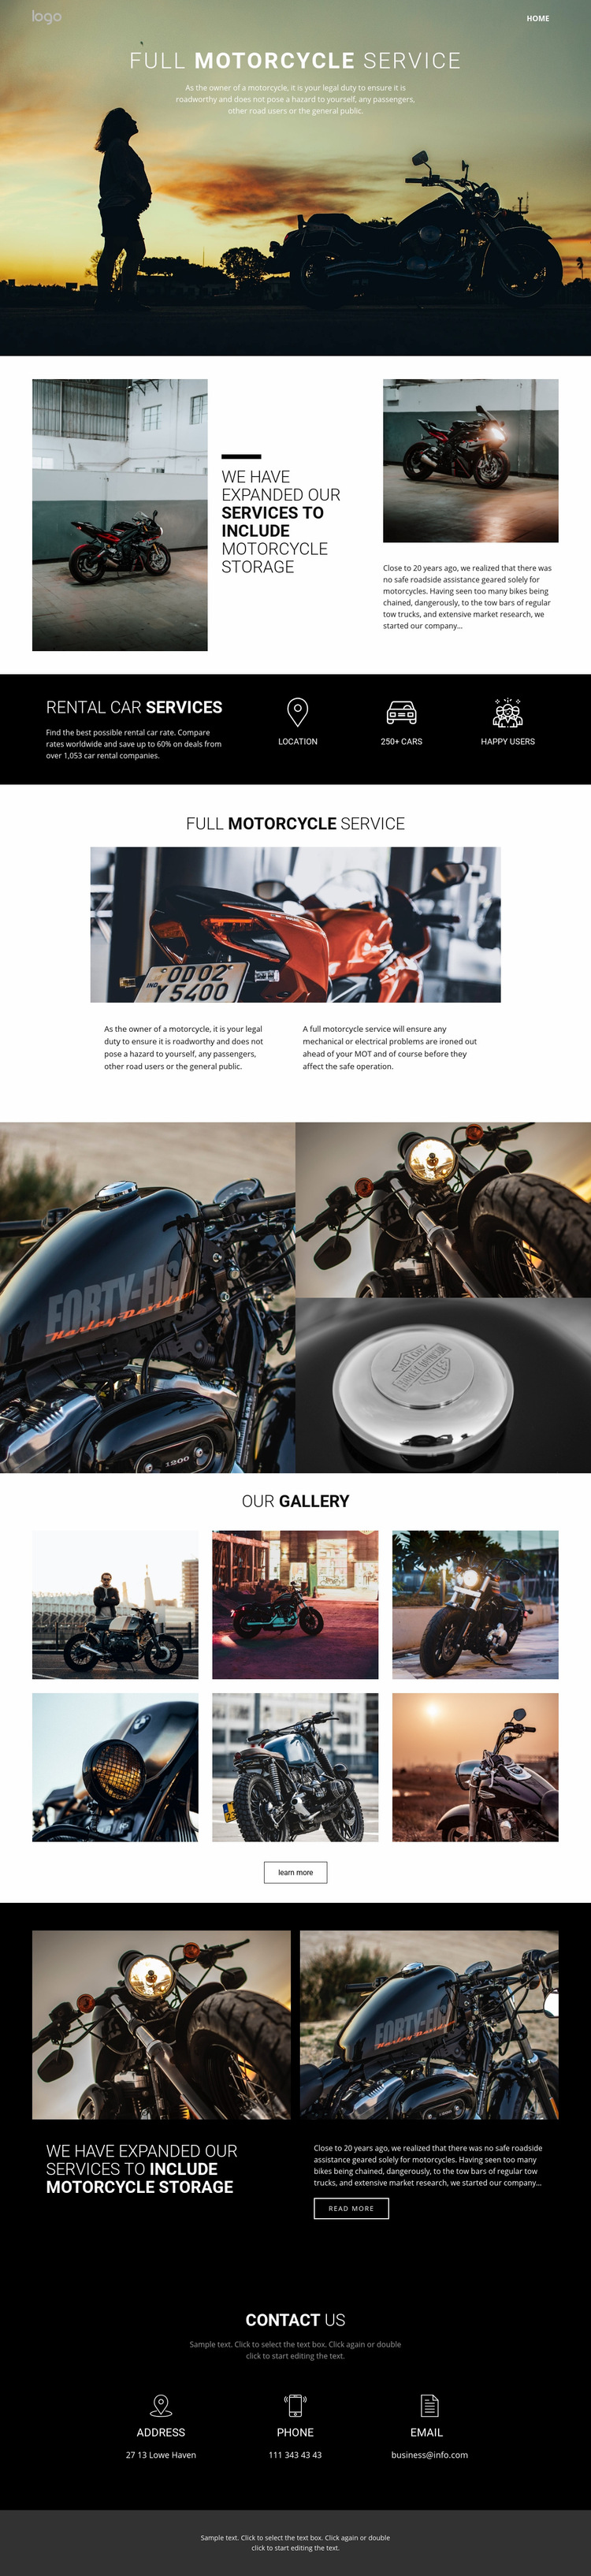 Caring for cycles and cars Web Page Design